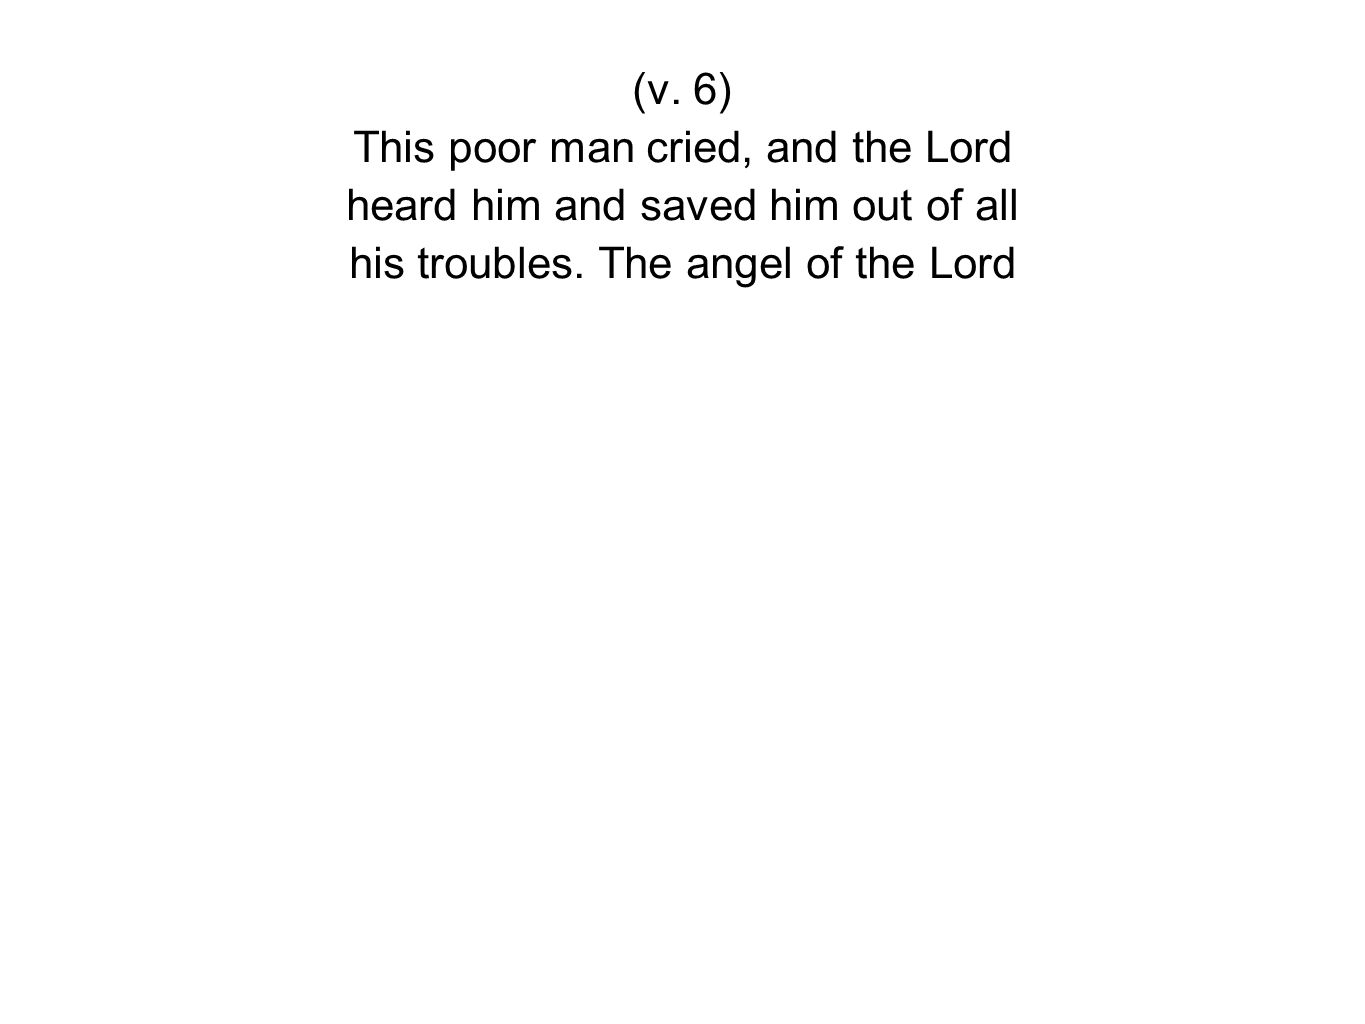 (v.6) This poor man cried, and the Lord heard him and saved him out of all his troubles.